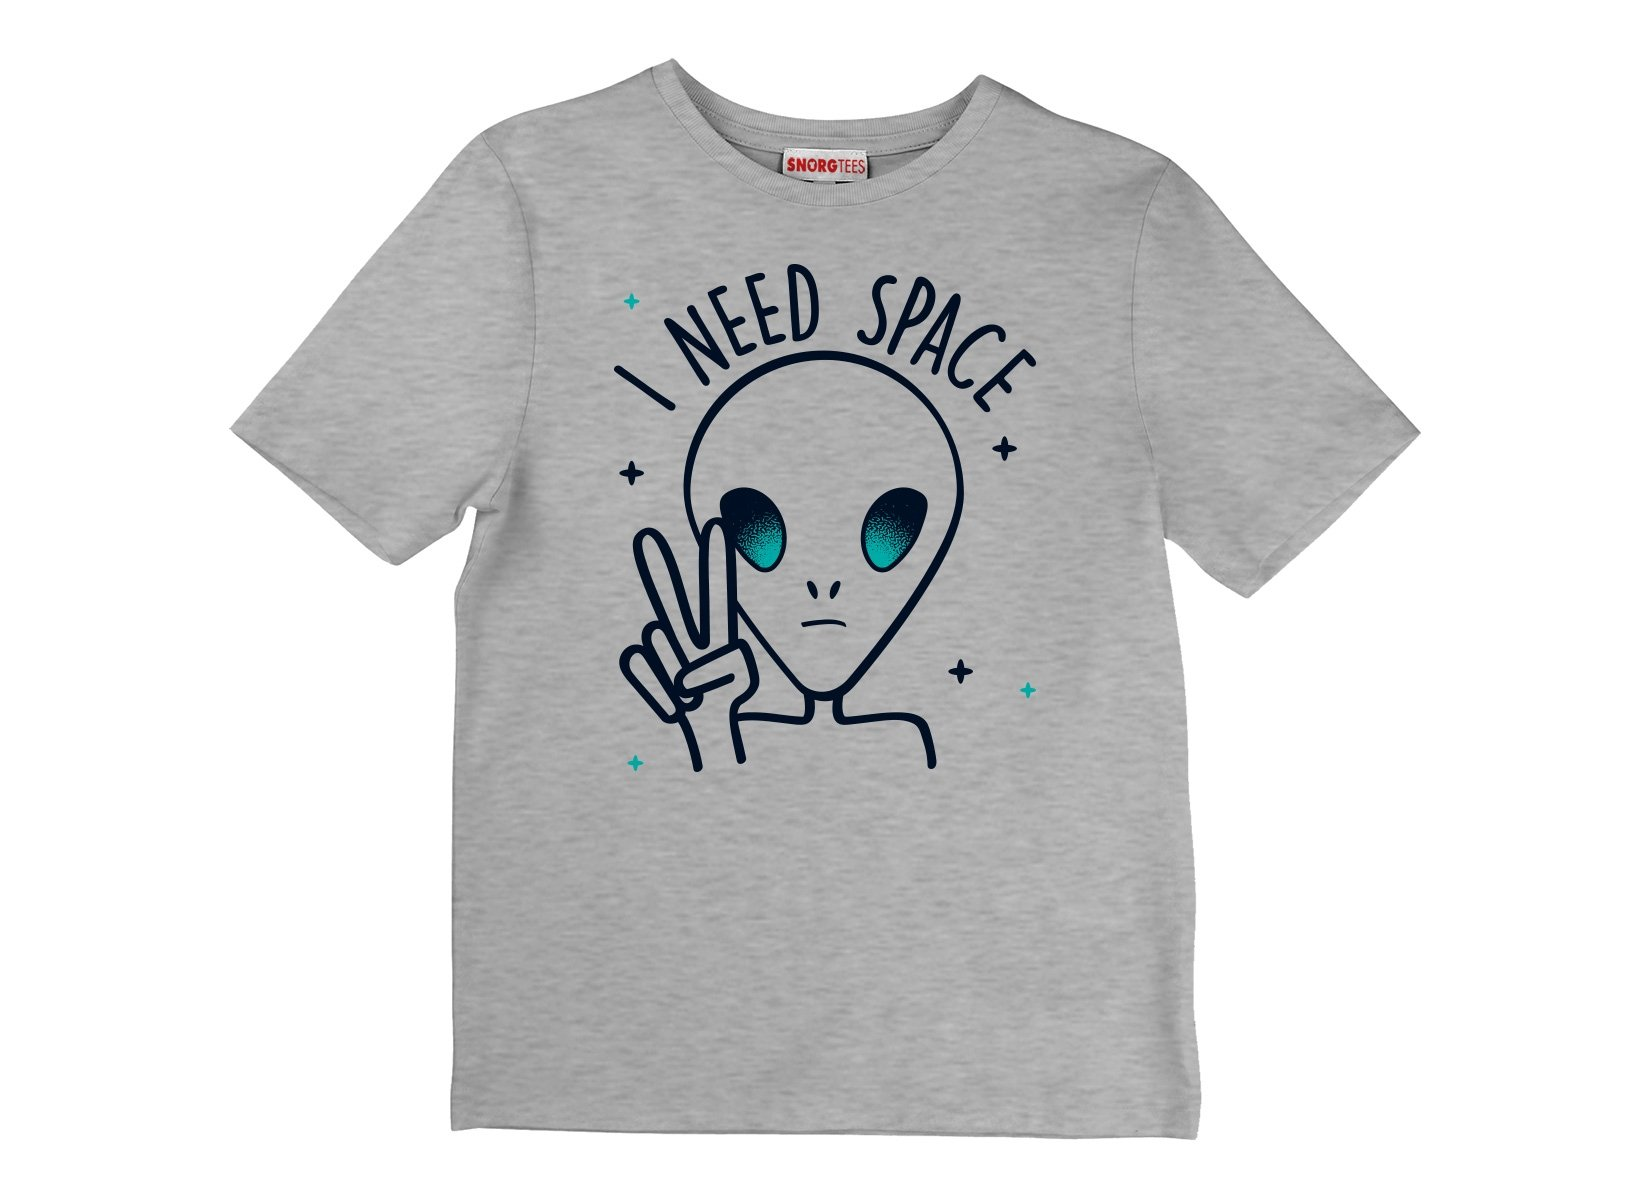 I Need Space on Kids T-Shirt